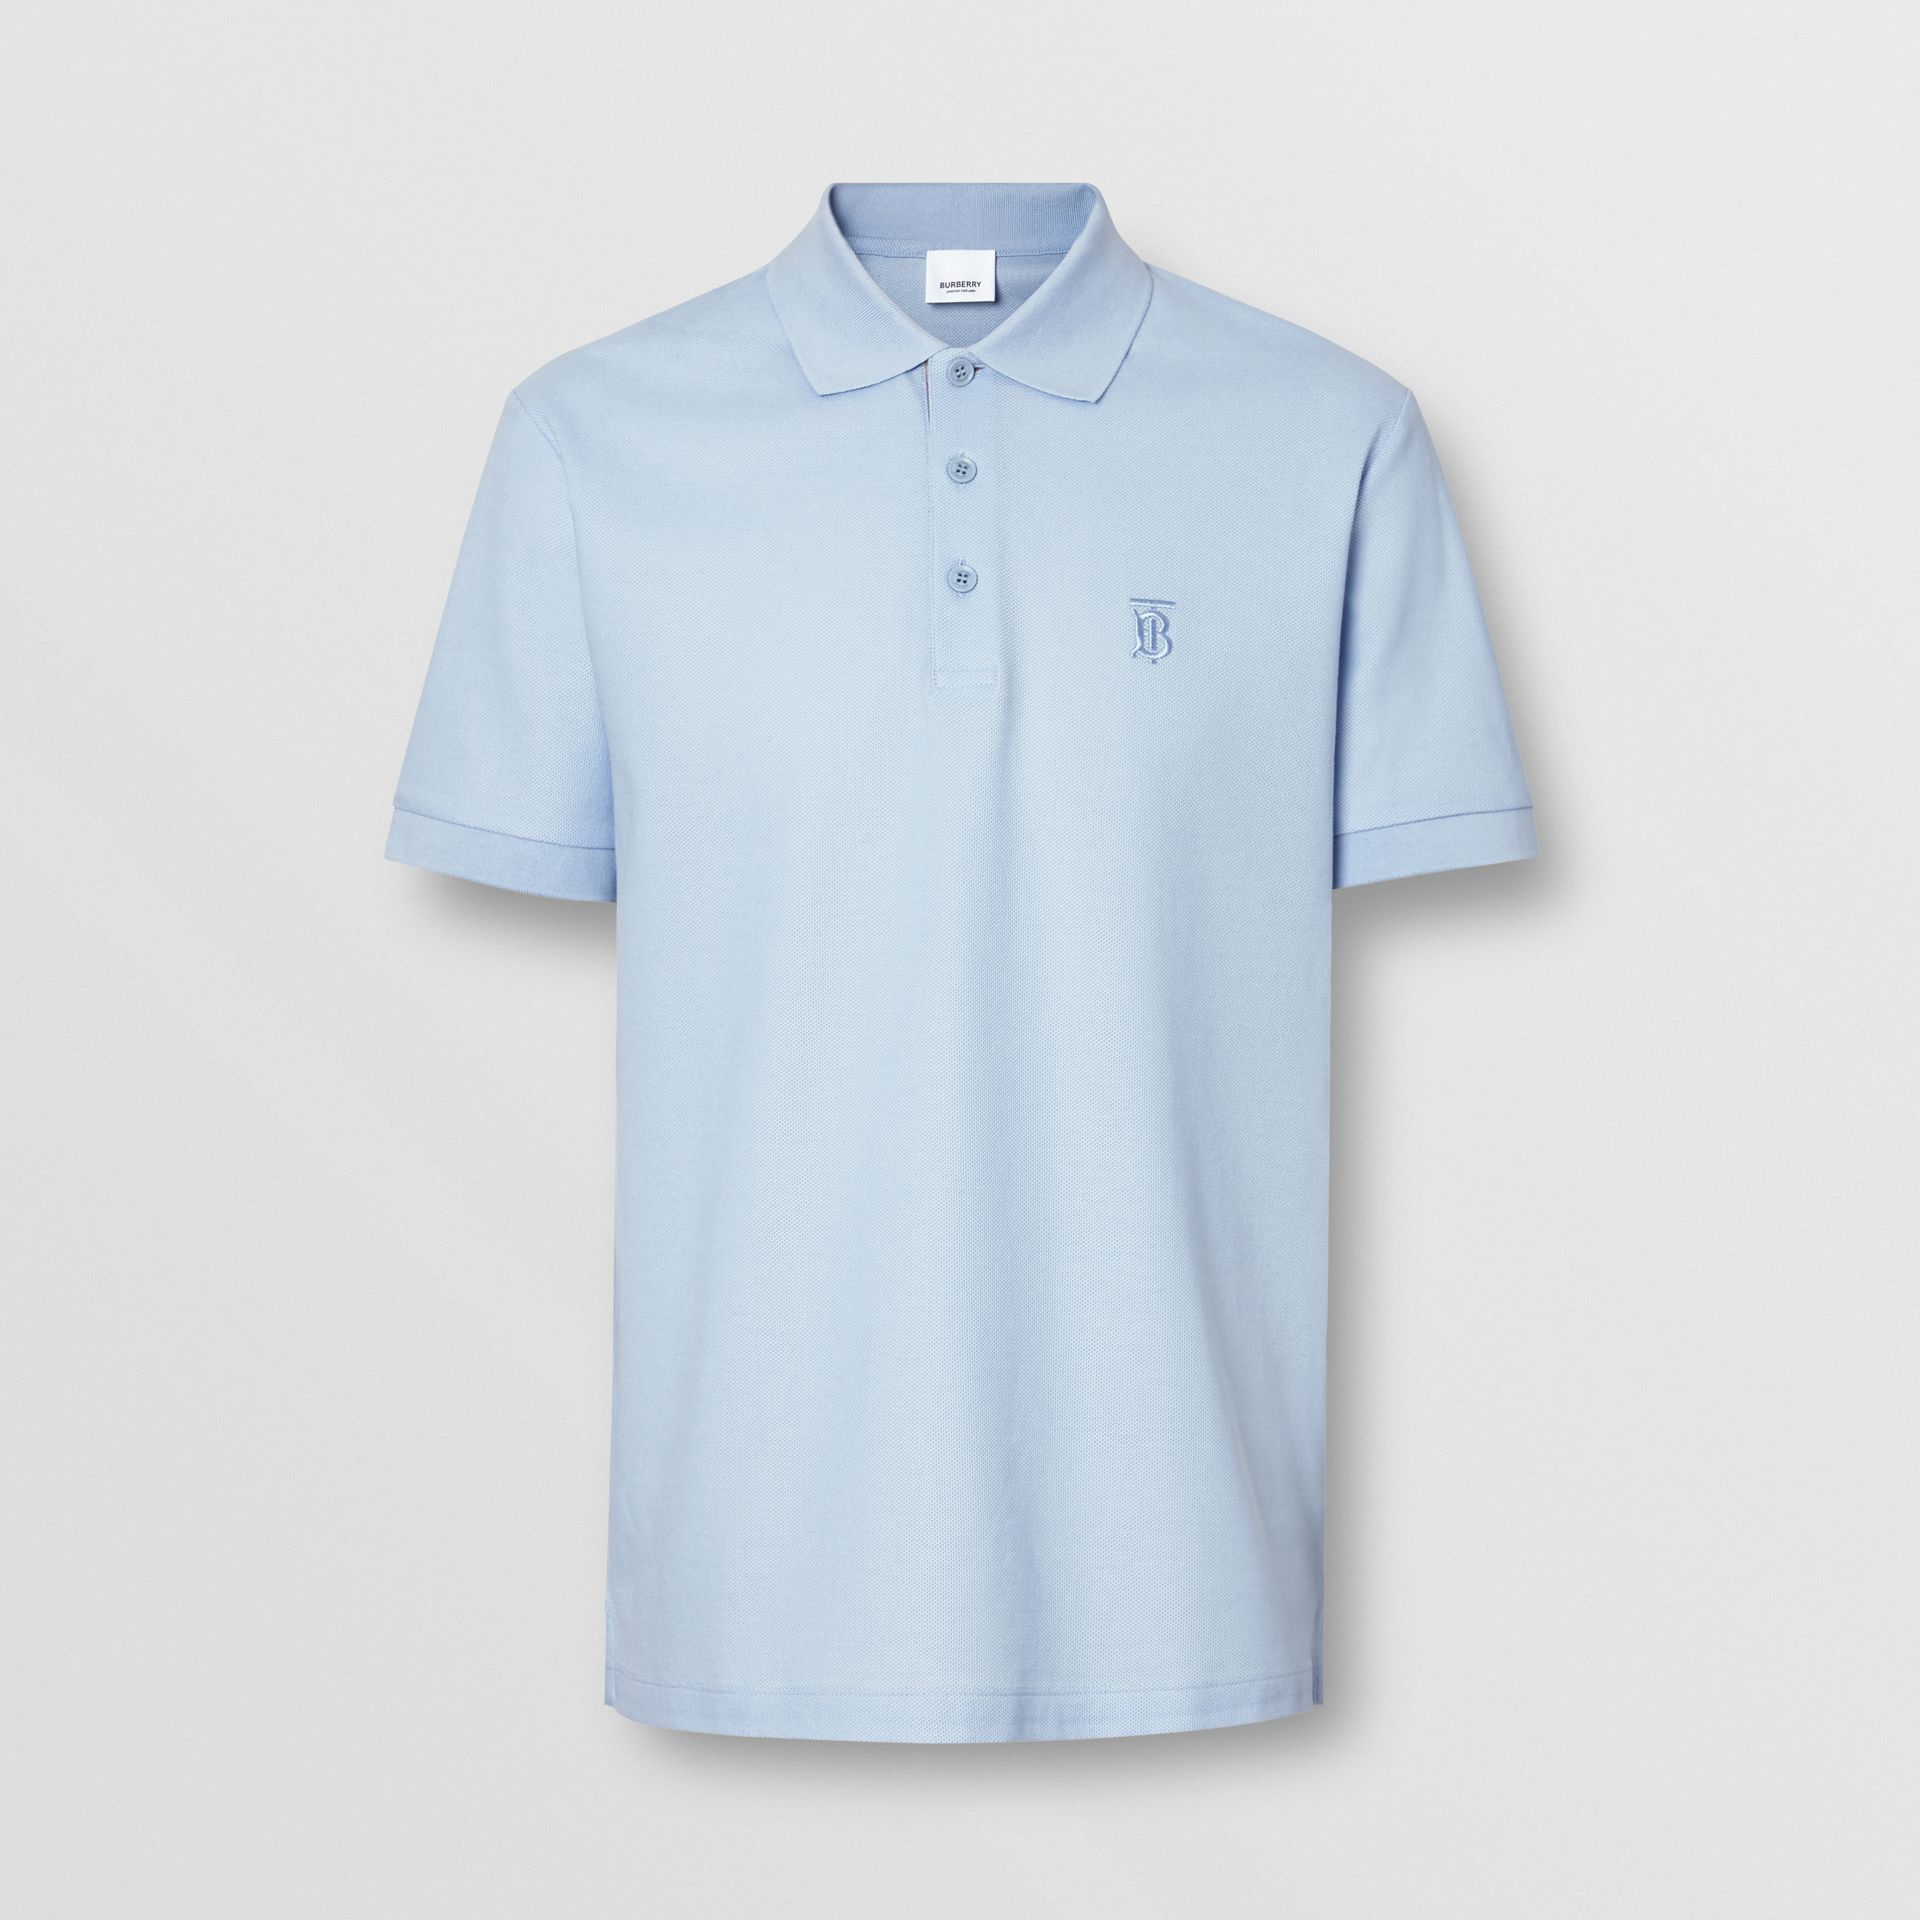 Monogram Motif Cotton Piqué Polo Shirt in Pale Blue - Men | Burberry Singapore - gallery image 3